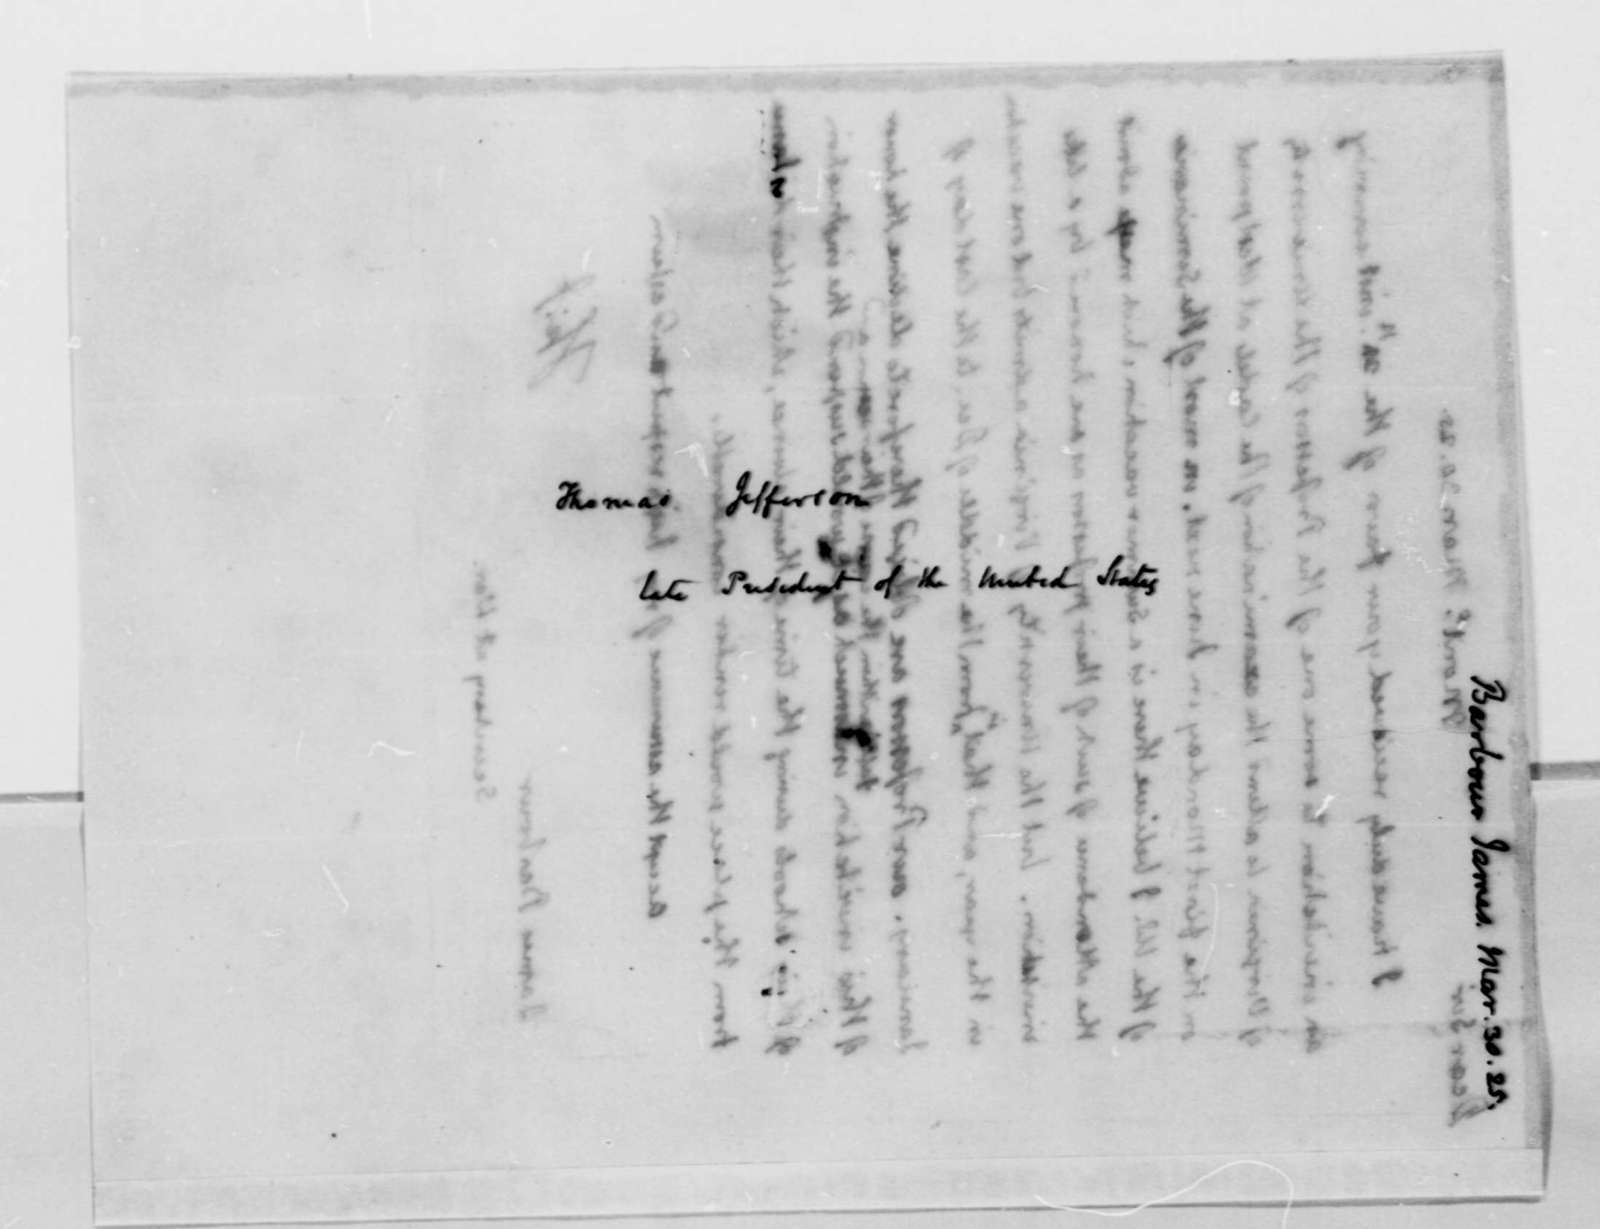 Thomas Jefferson to James Barbour, March 30, 1825